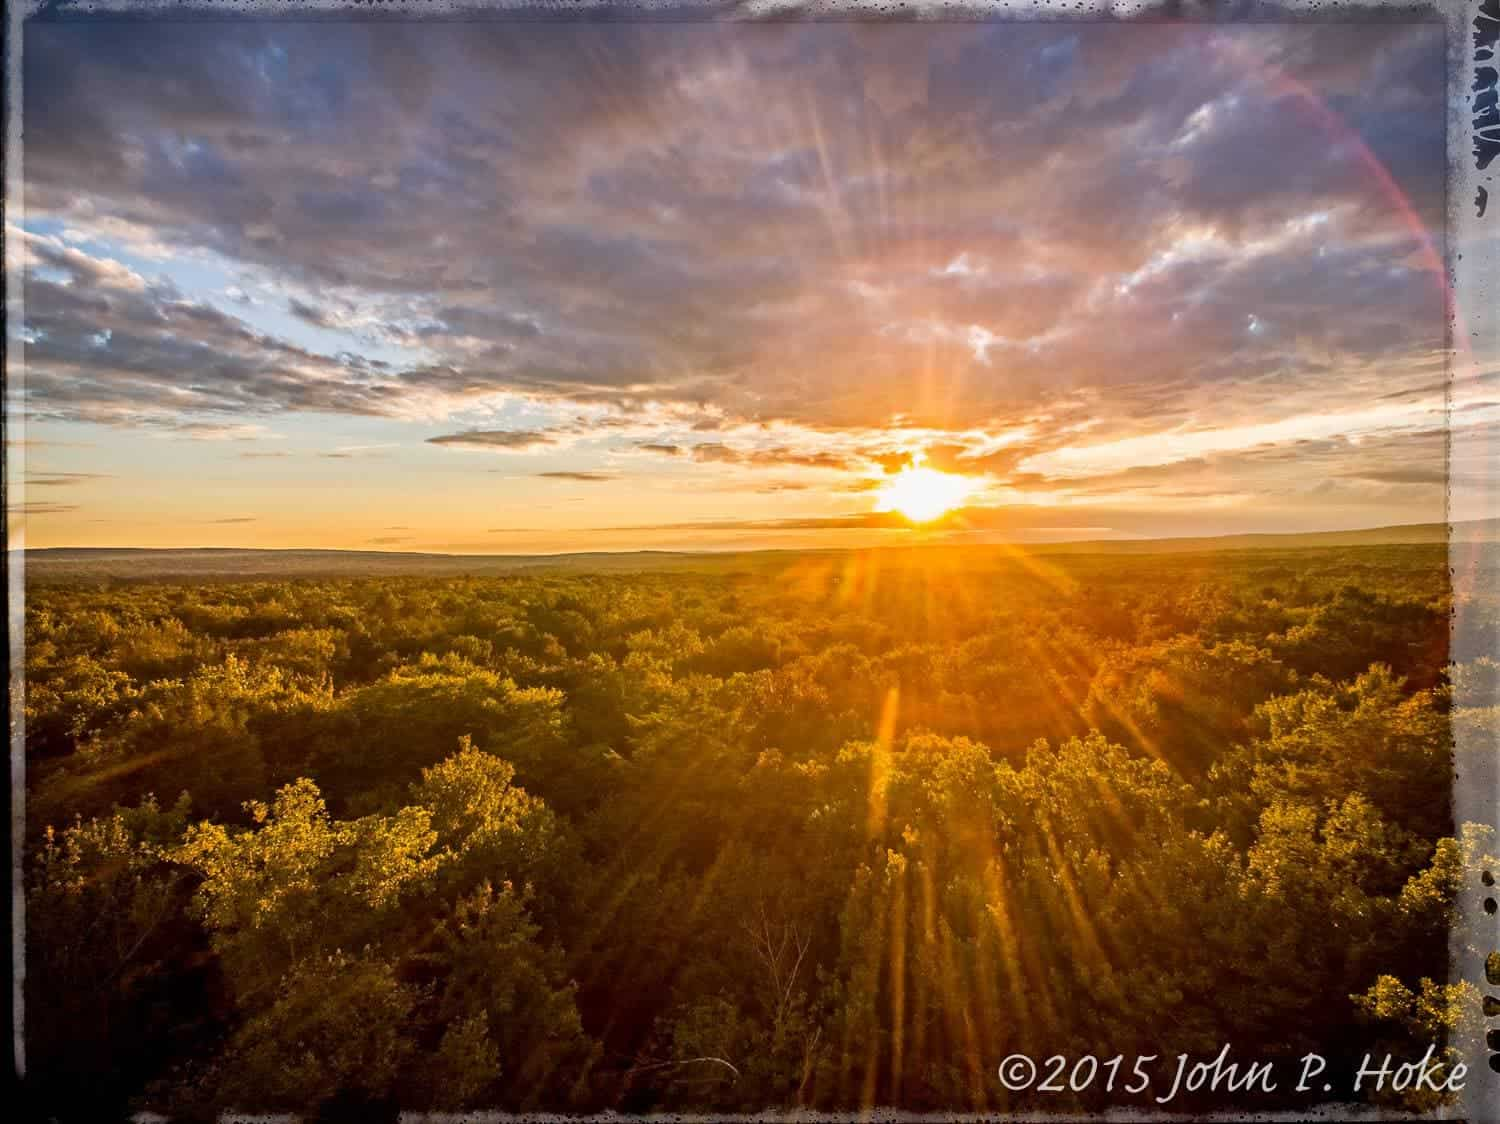 Sunset over the Pocono Mountains (Albrightsville, PA)